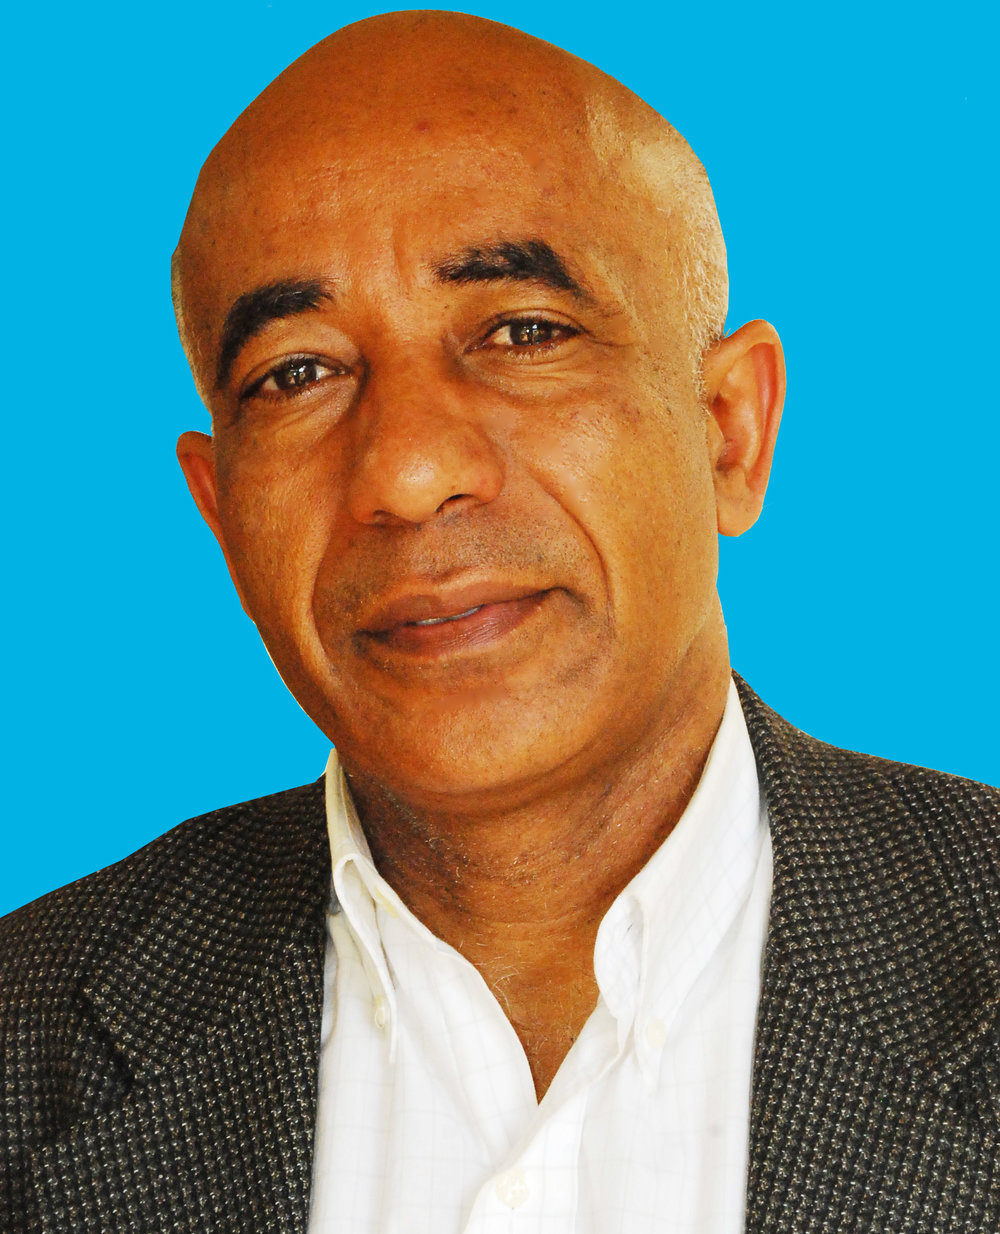 Dr Gulelat Kebede,  Lecturer & researcher on urbanization and economic development, The New School